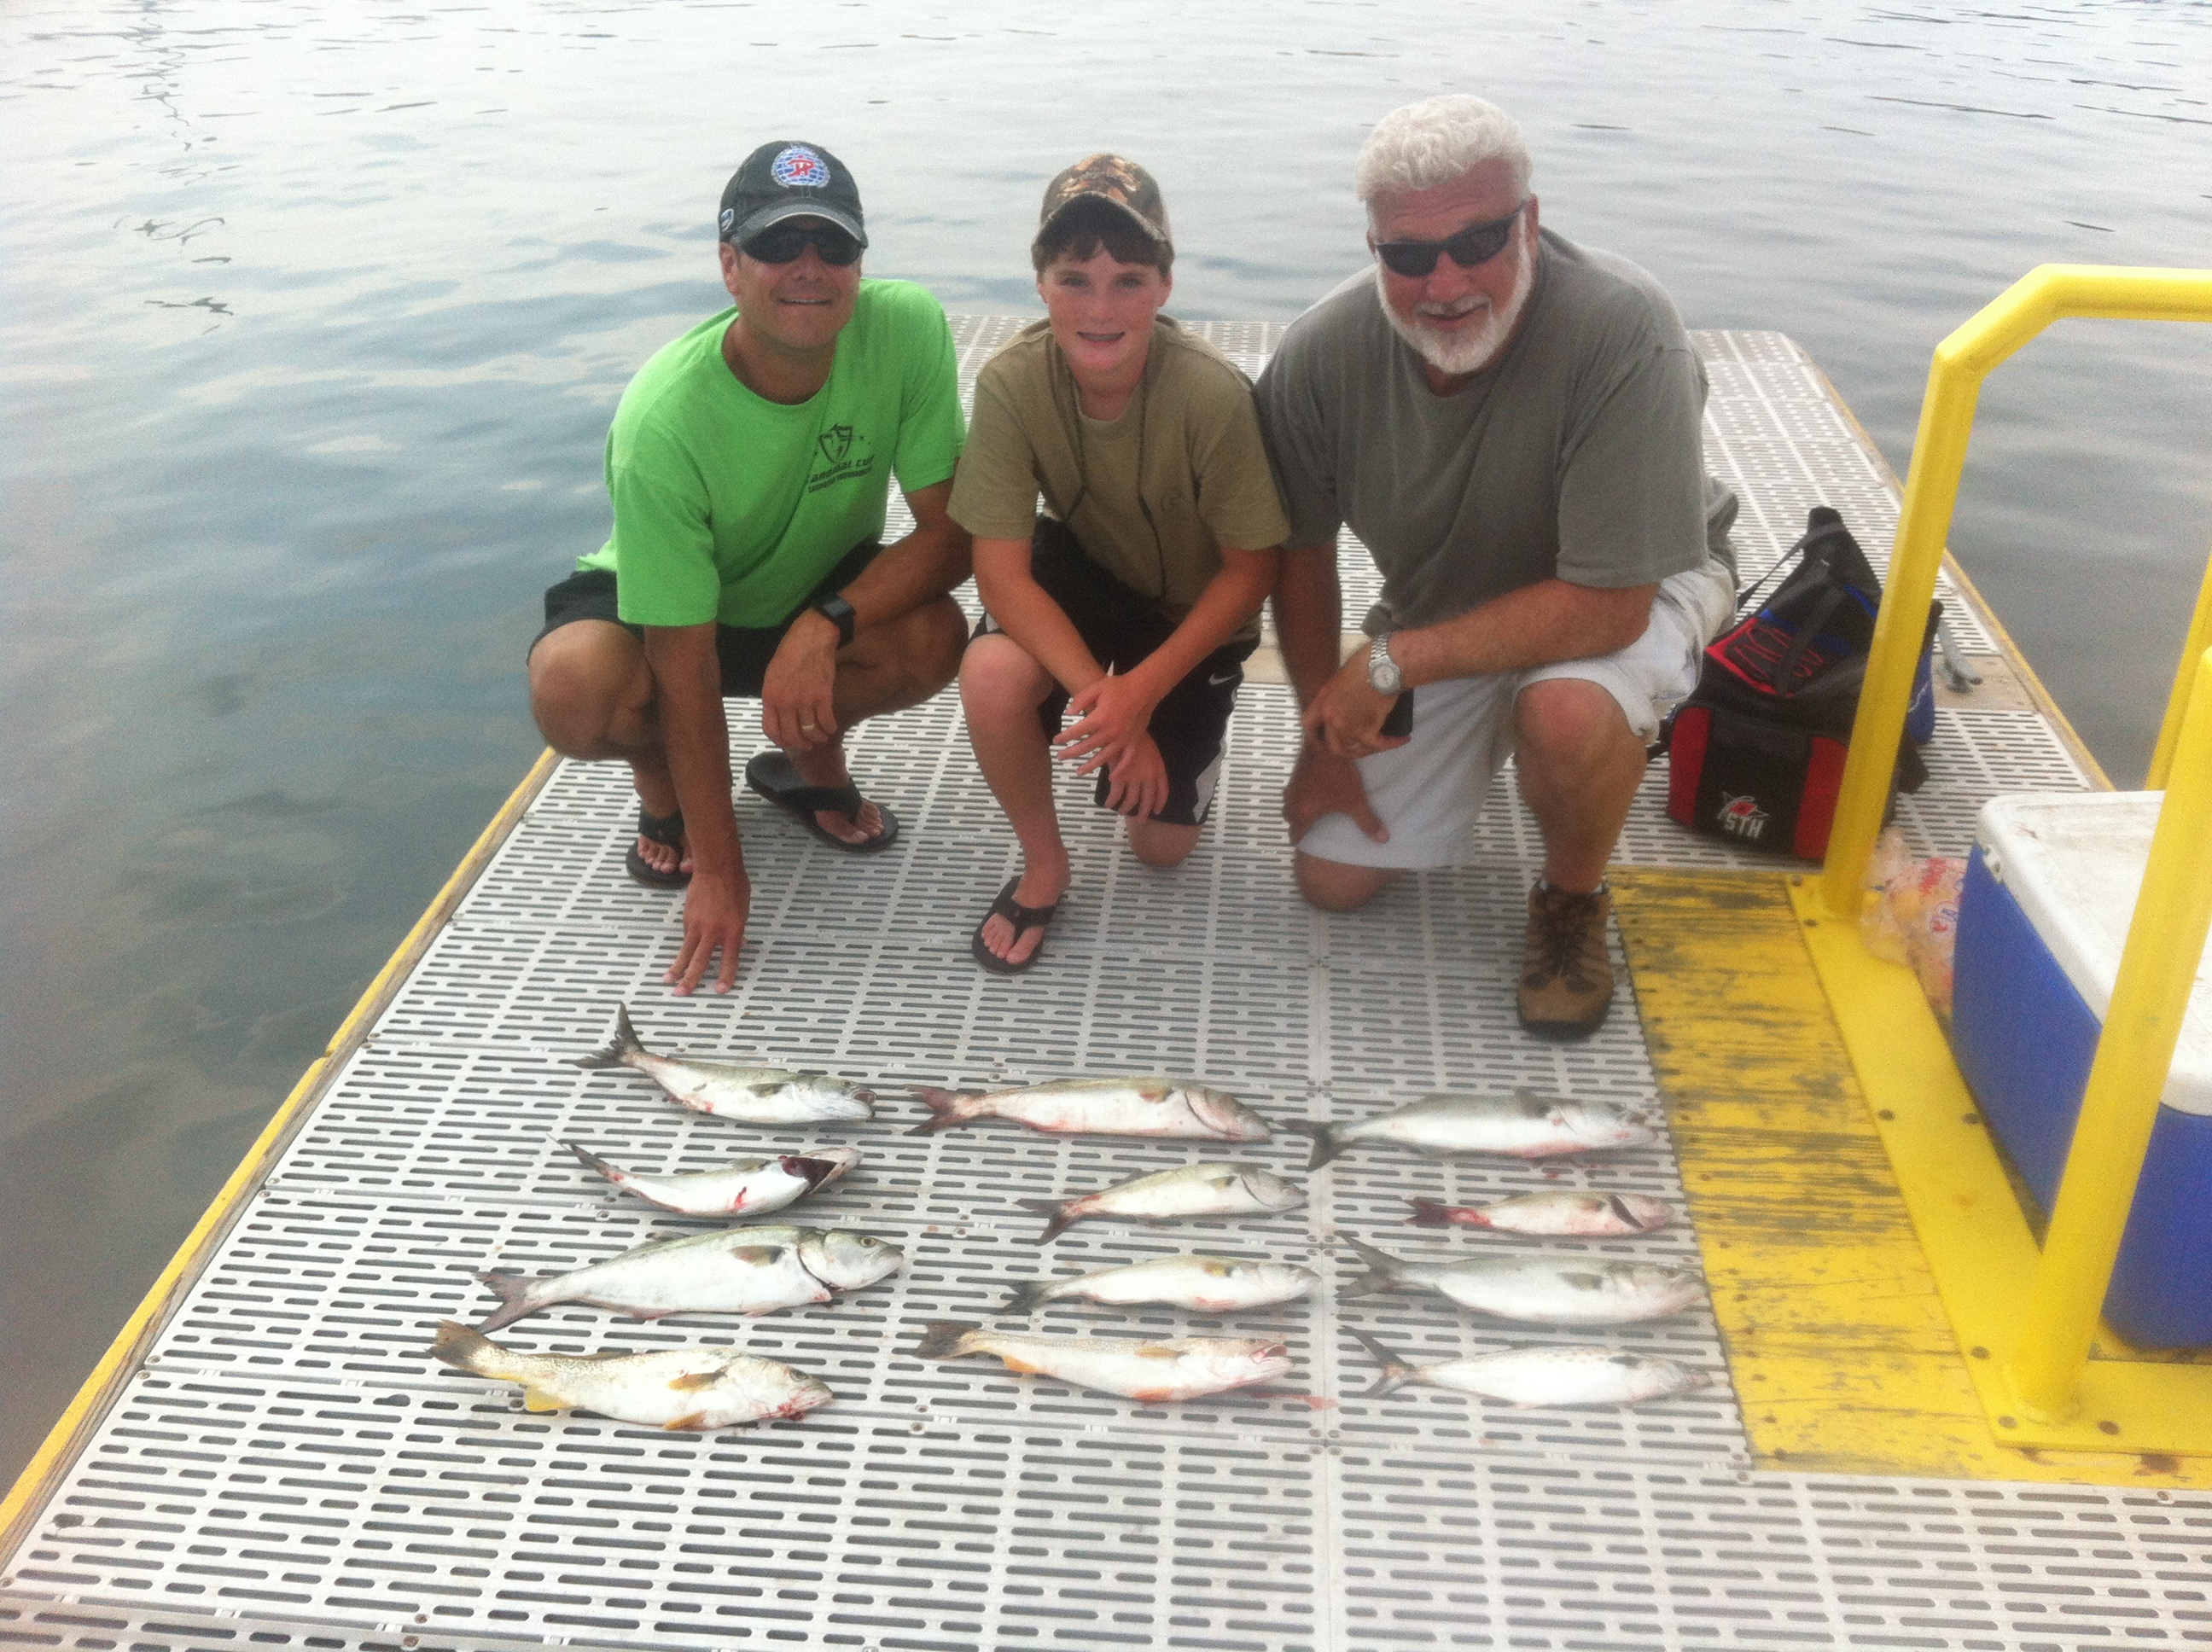 Sept october fishing report for topsail wrightsville for Fishing report wrightsville beach nc